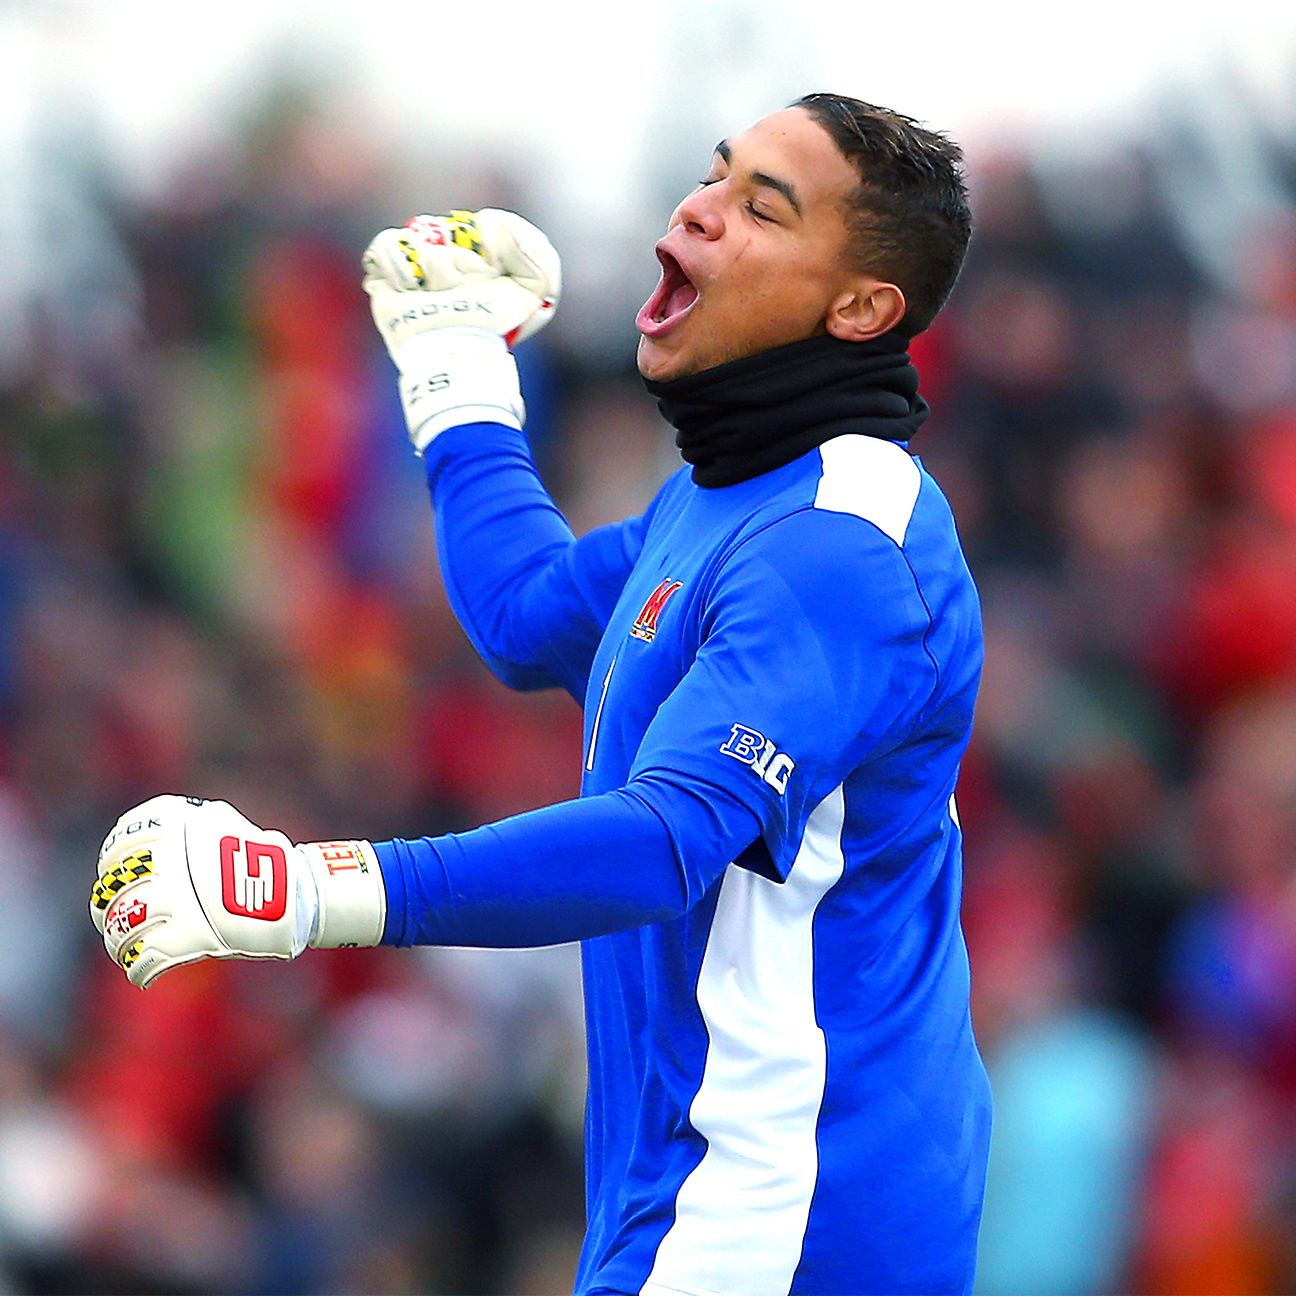 Goalkeeper Zack Steffen is one of the U.S. men's national team's top prospects.